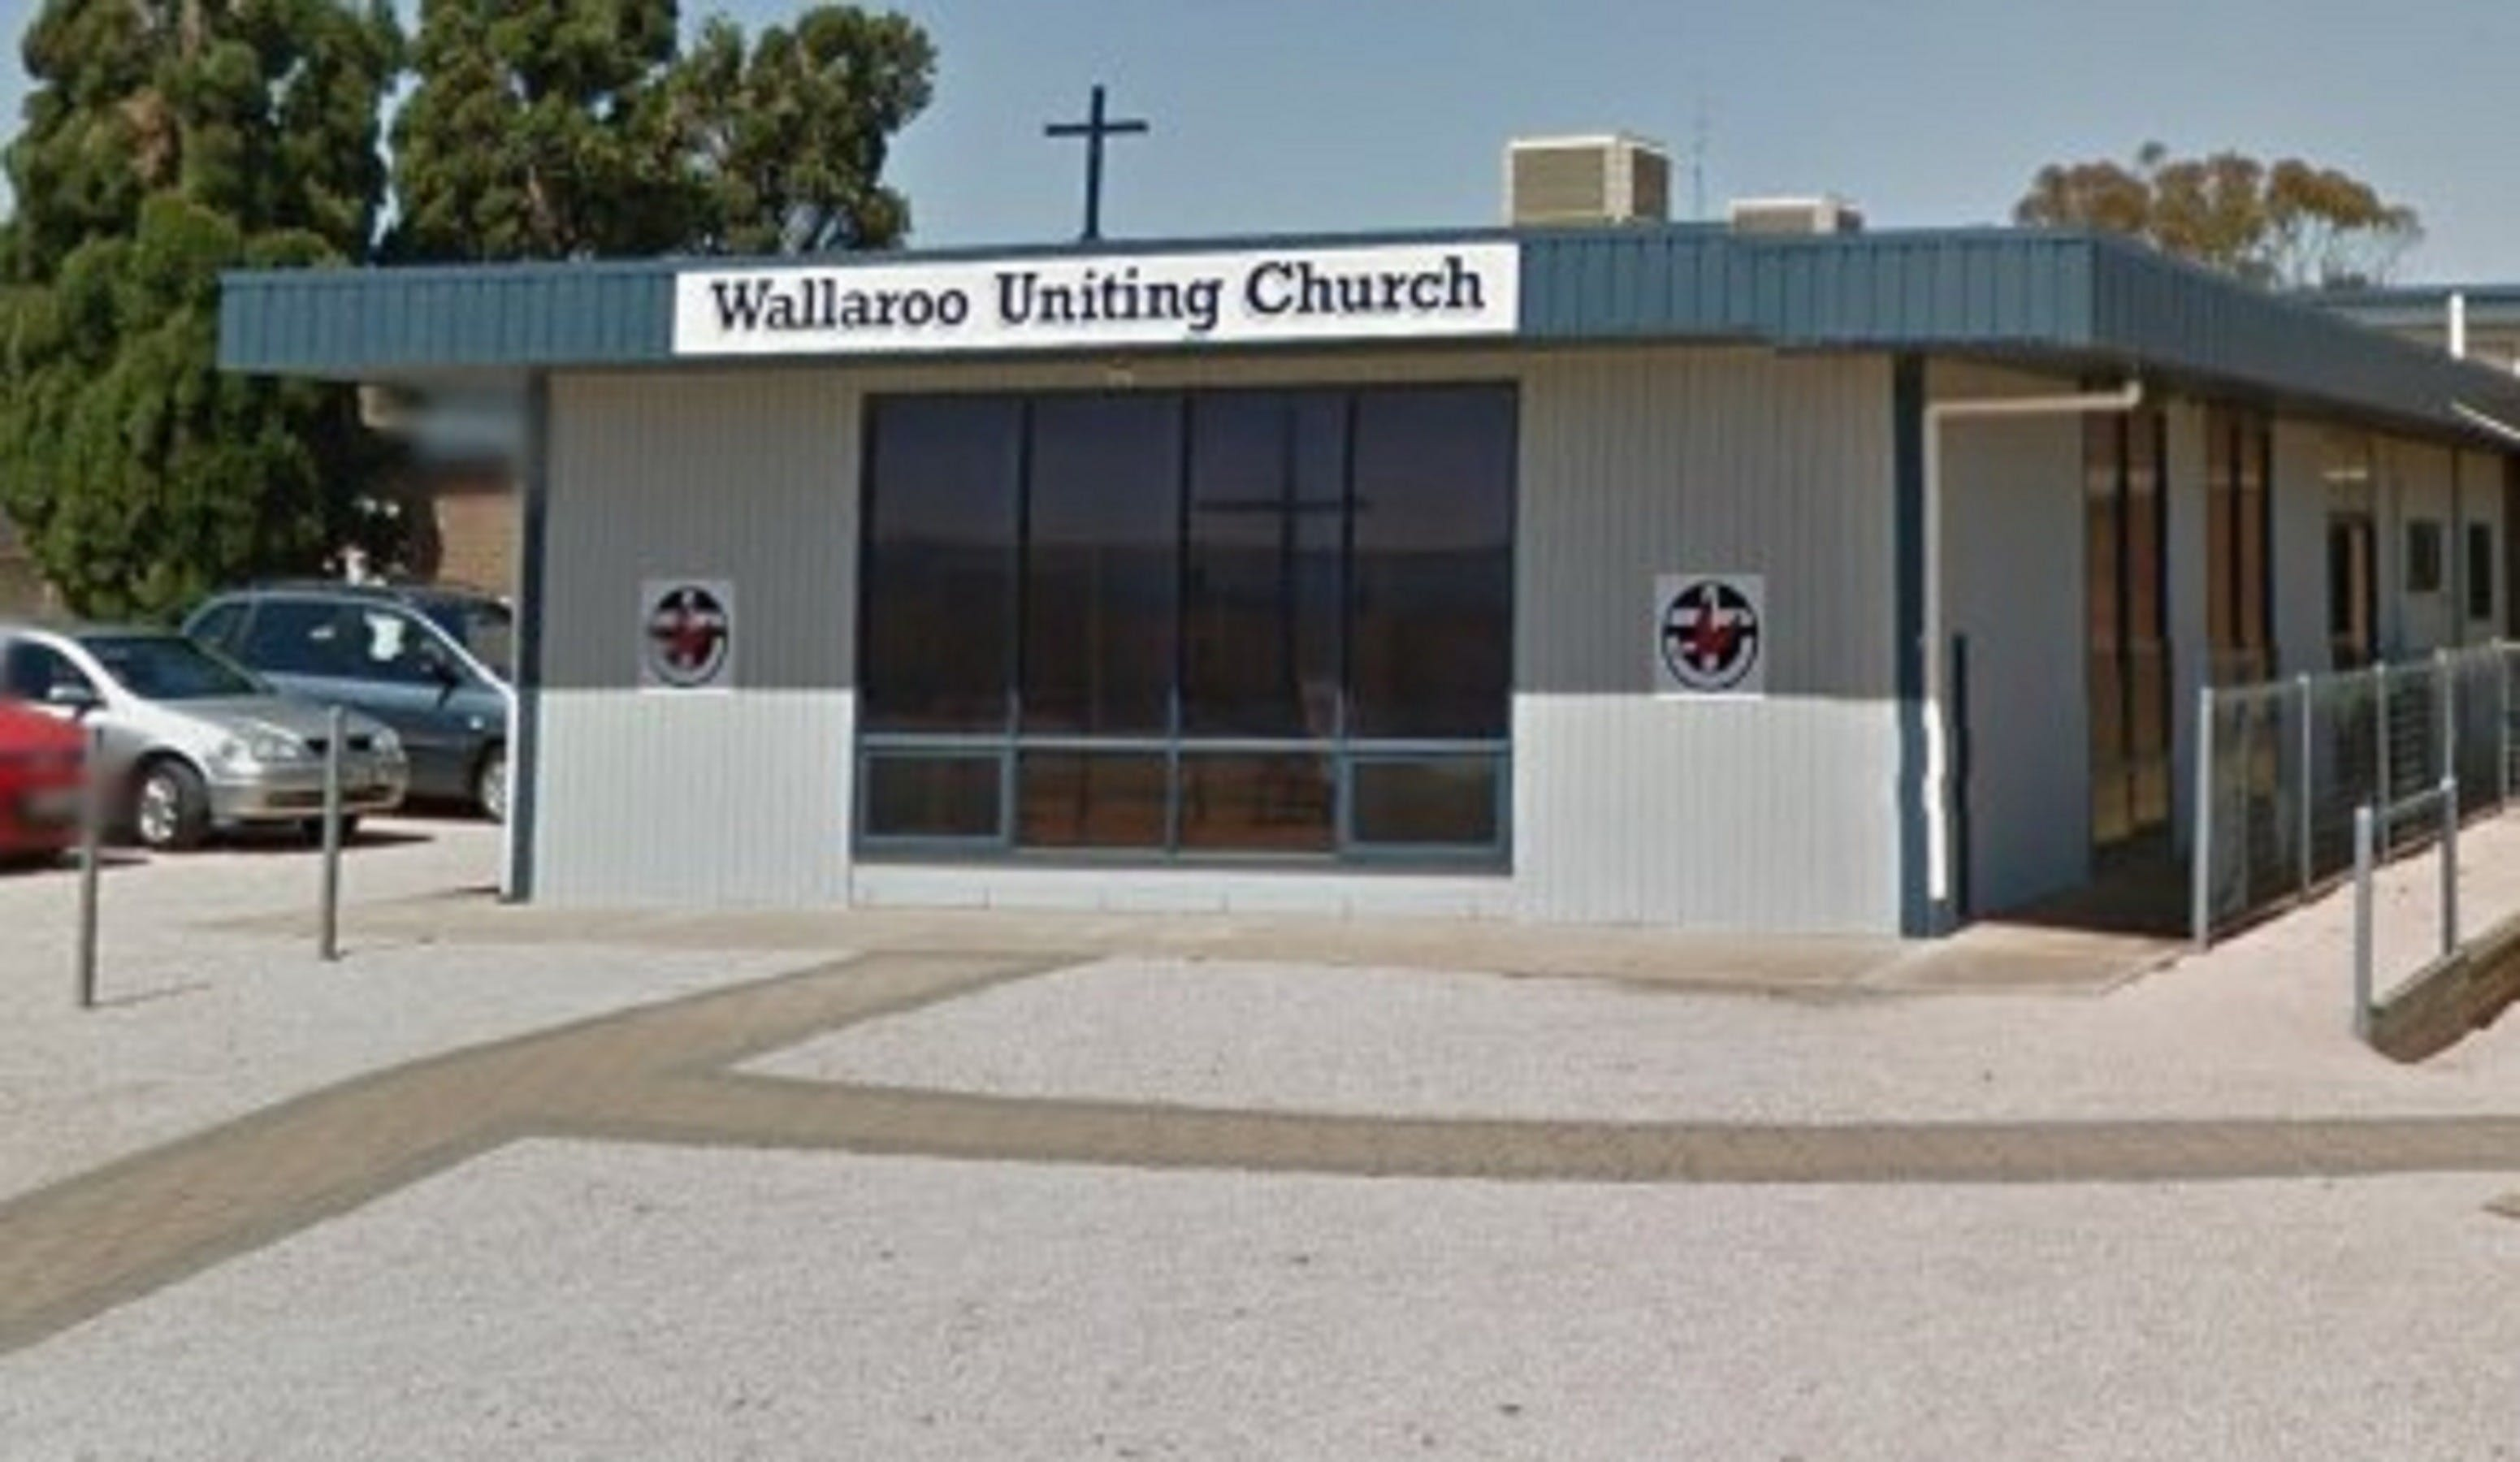 Wallaroo Uniting Church - Find Attractions